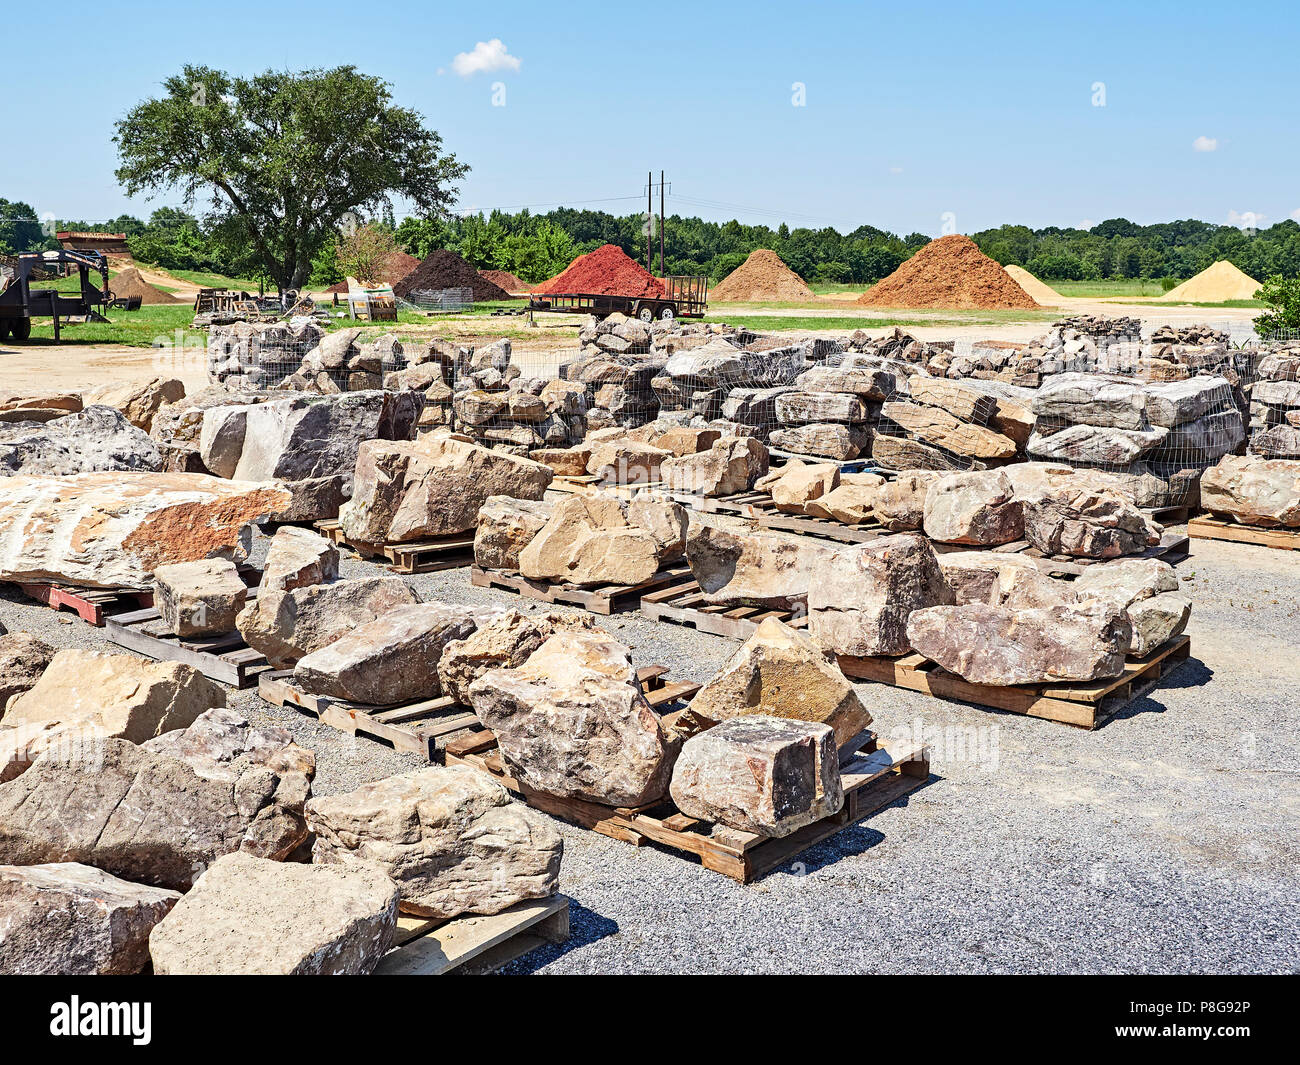 Landscaping Materials Yard With Large Rocks And Stones Used In Landscaping Construction Work In Montgomery Alabama Usa Stock Photo Alamy